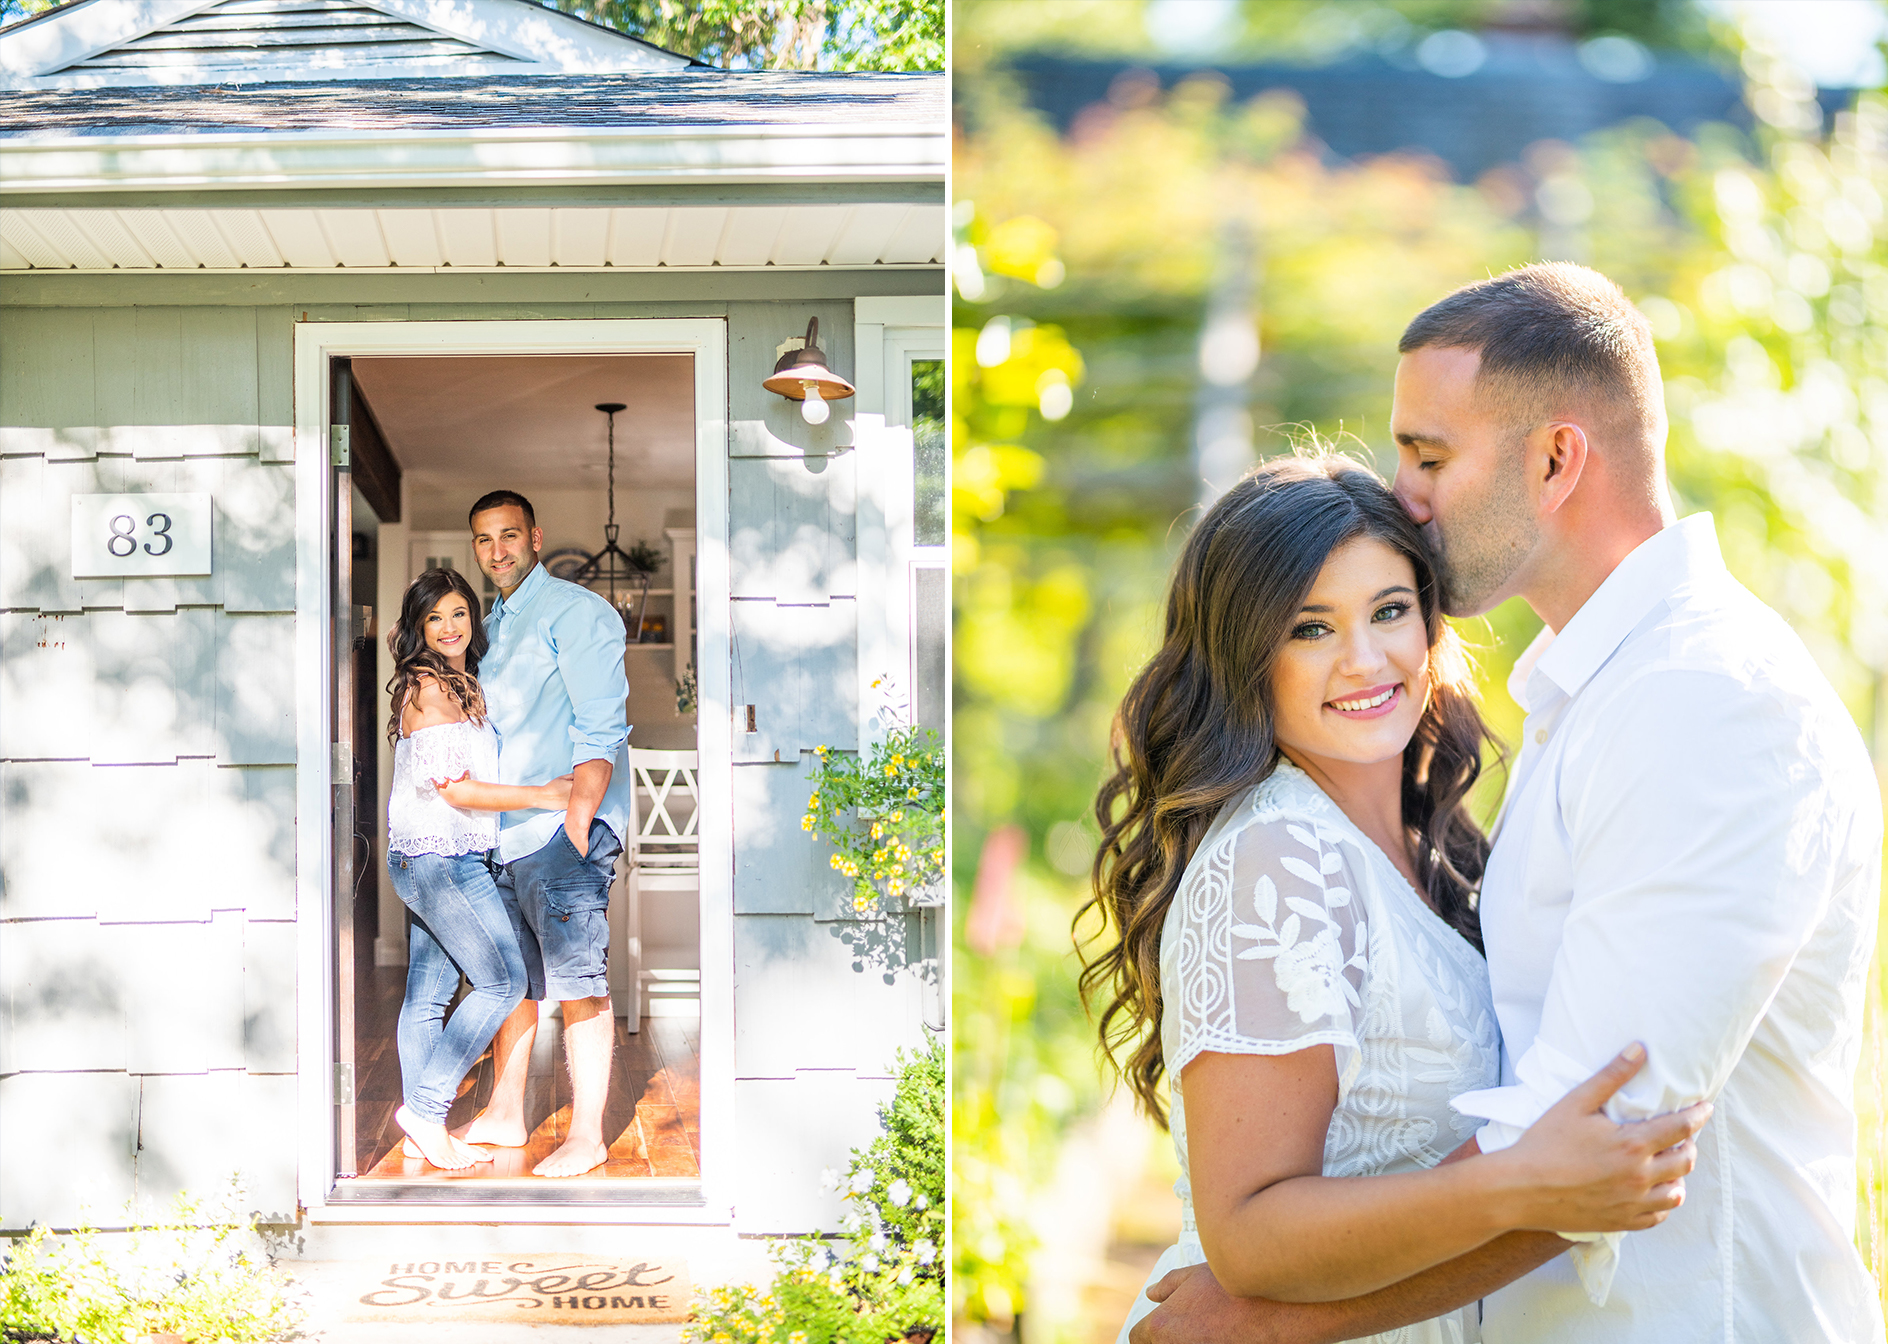 Calverton Engagement Shoot | Engagement Shoot at Home | Rustic Farrm Kitchen Engagement Shoot | North Forrk Wedding Photographer5